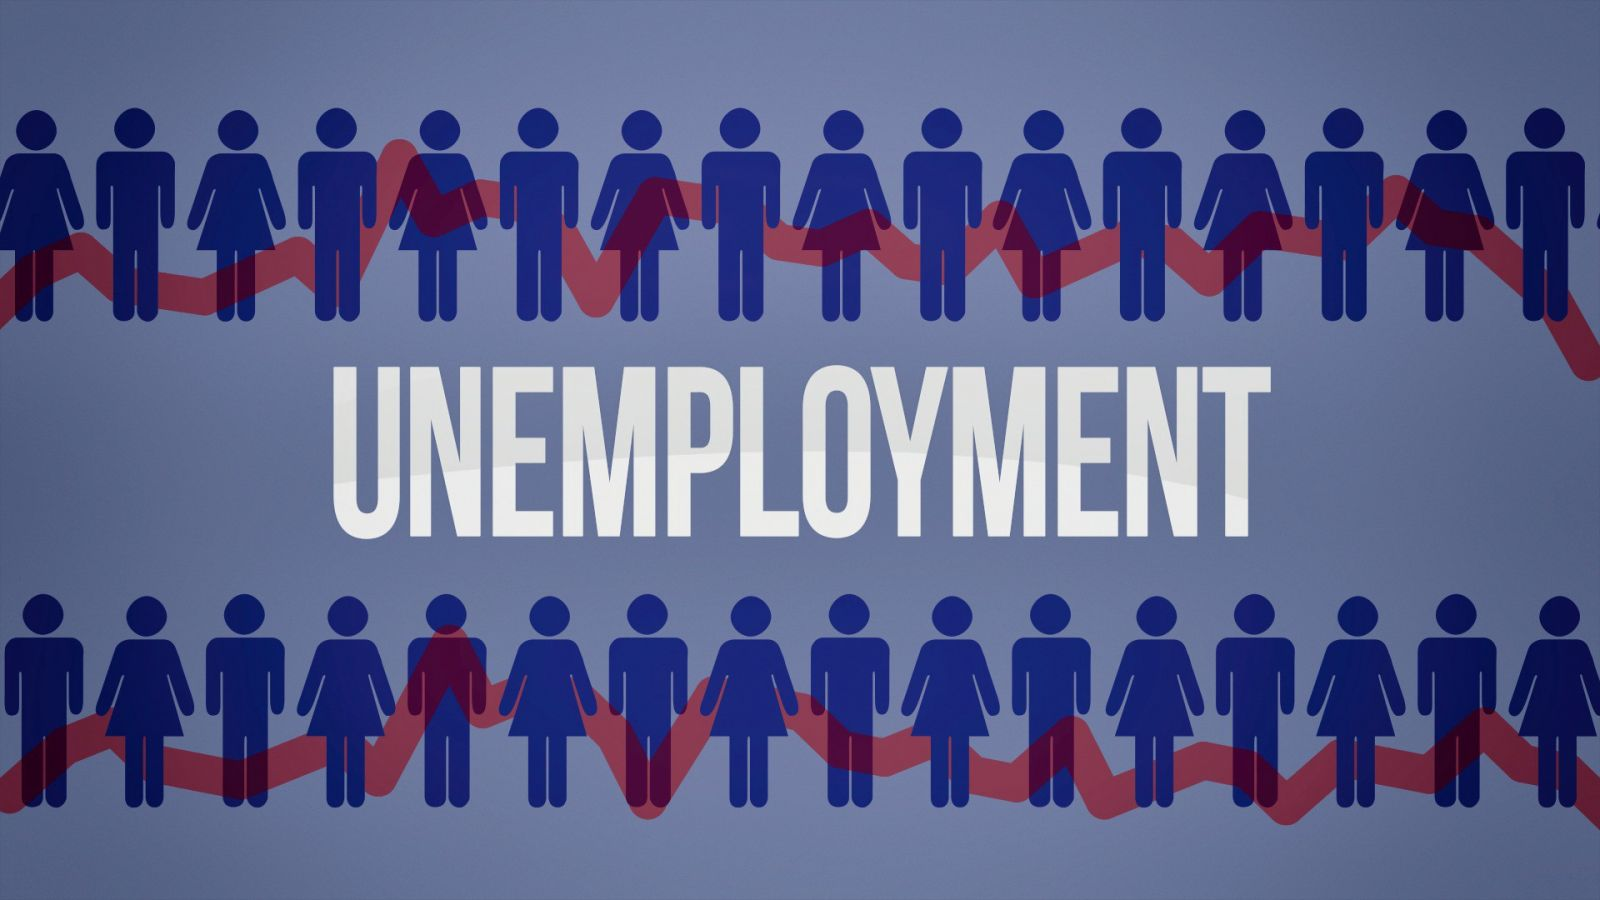 Turkey's Unemployment Rate at 13.1% in March